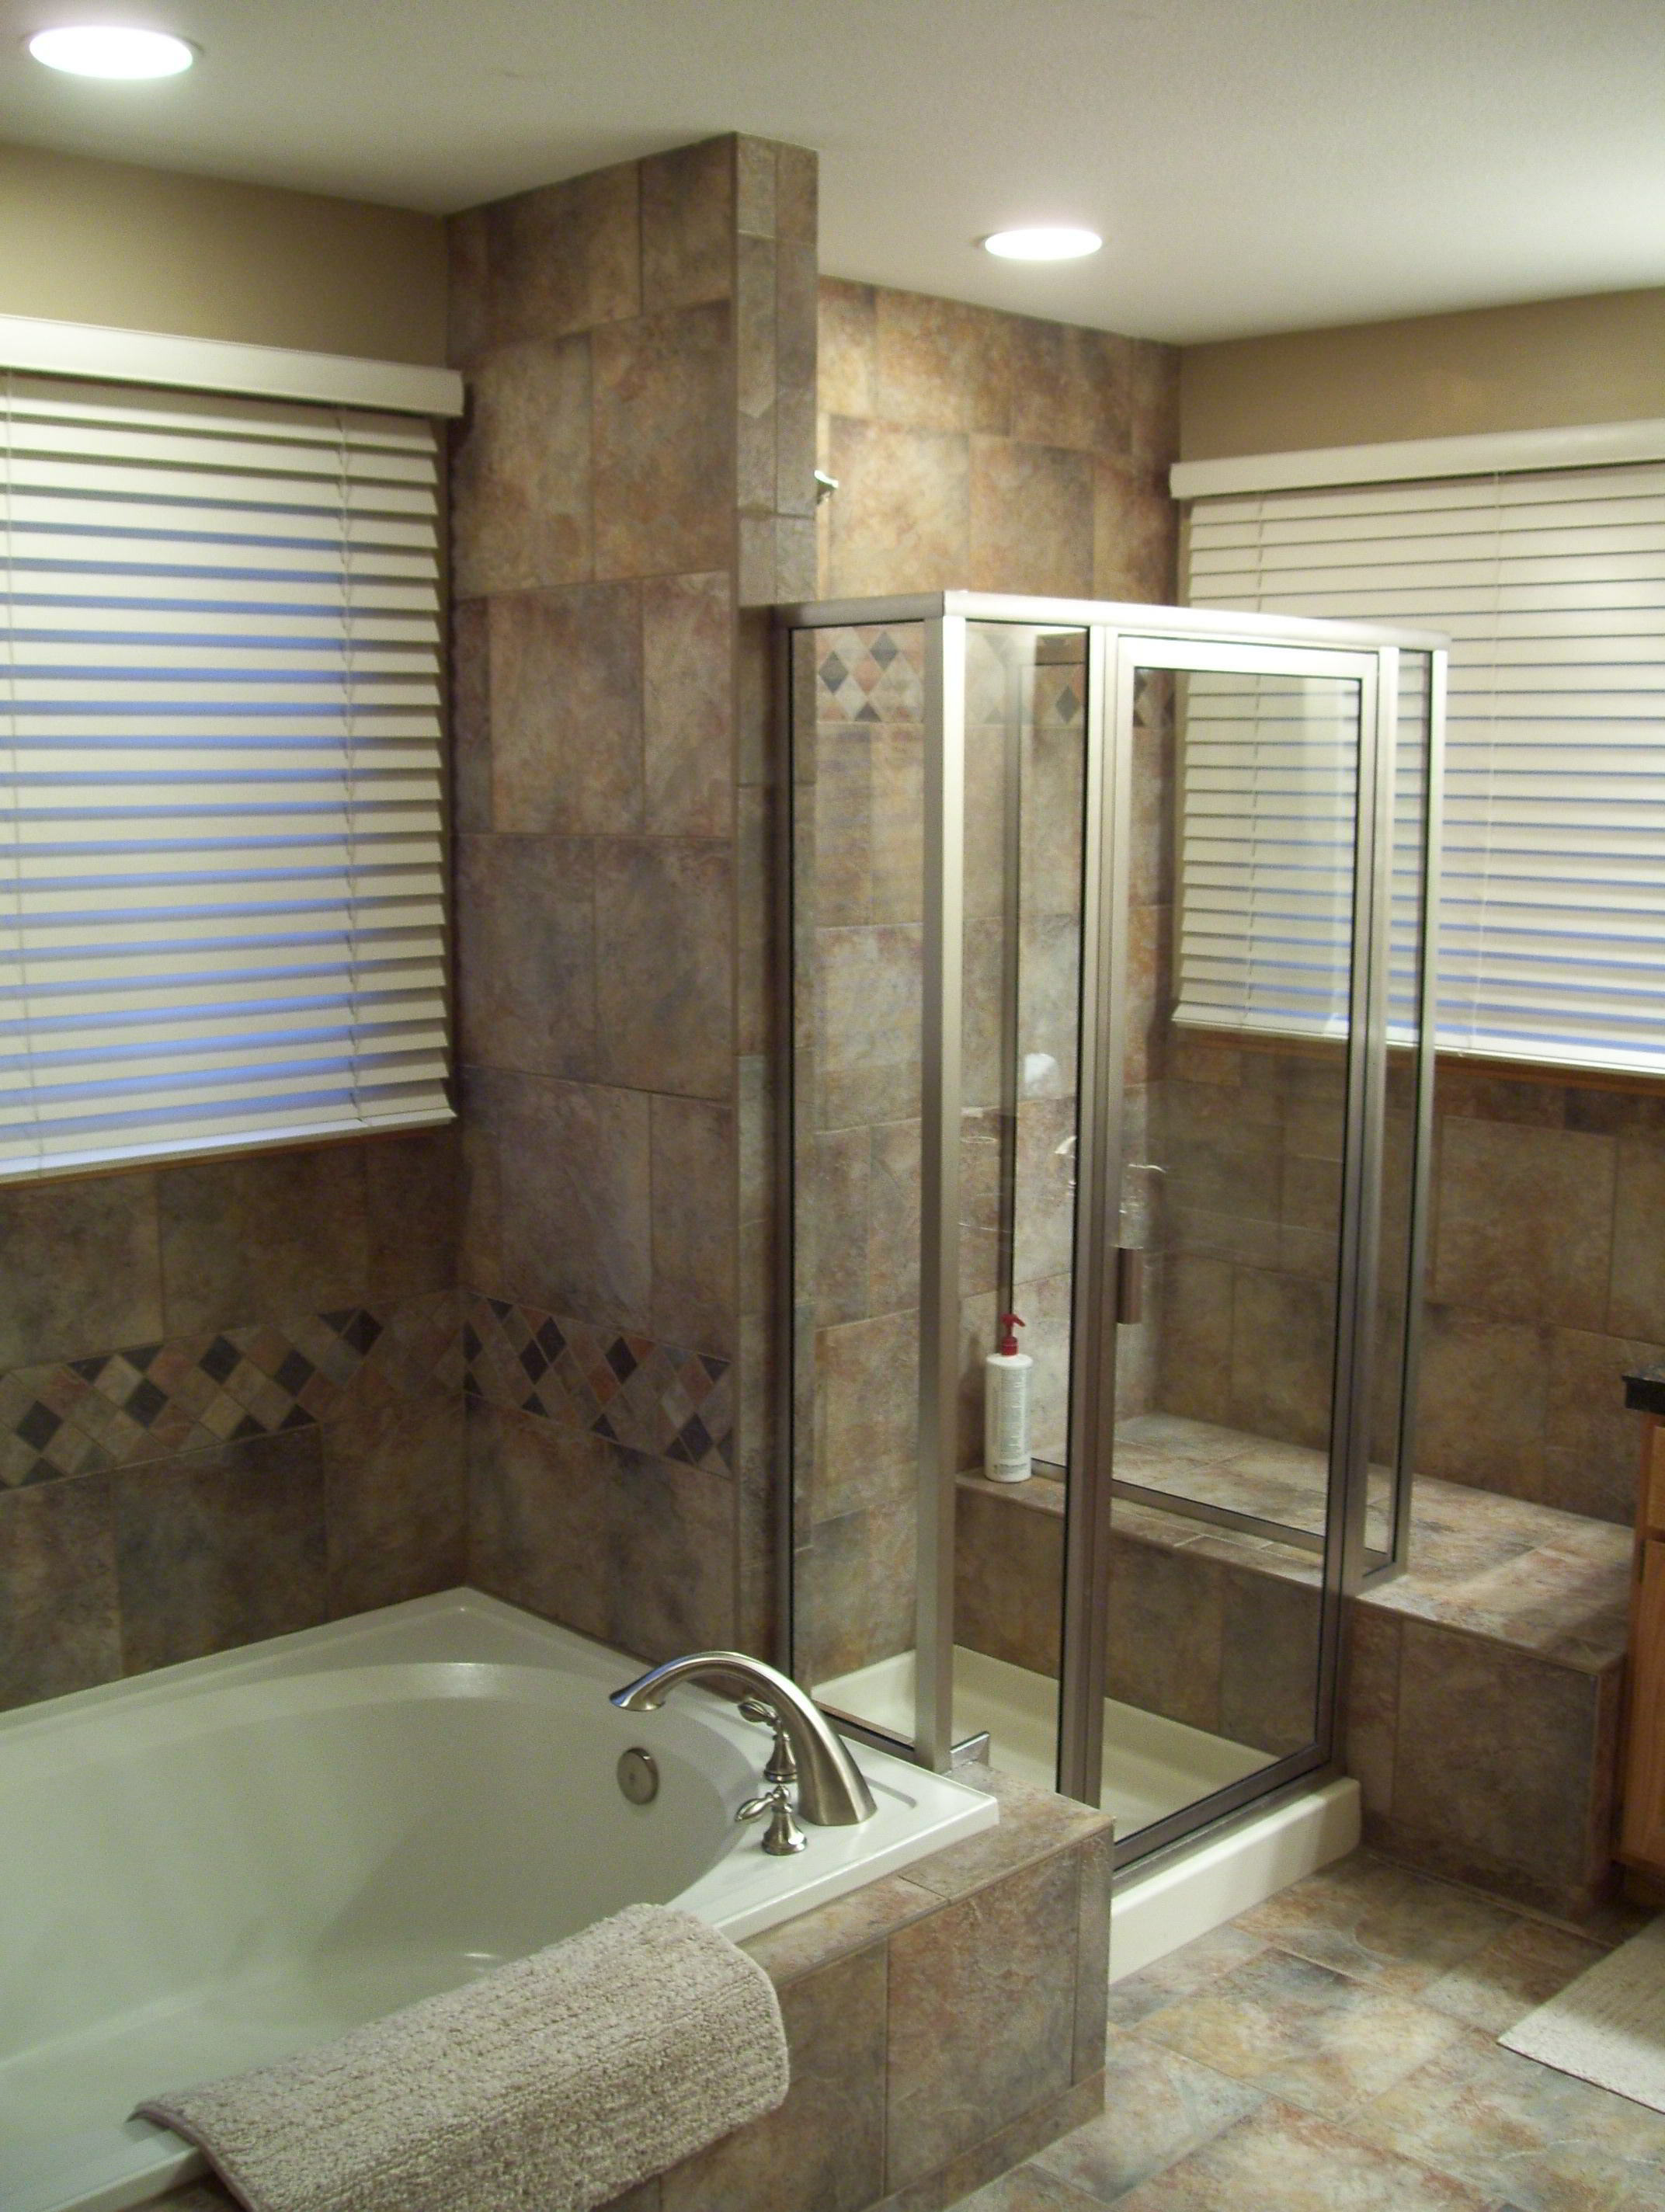 bathroom remodeling home improvement - Cost Of Average Bathroom Remodel